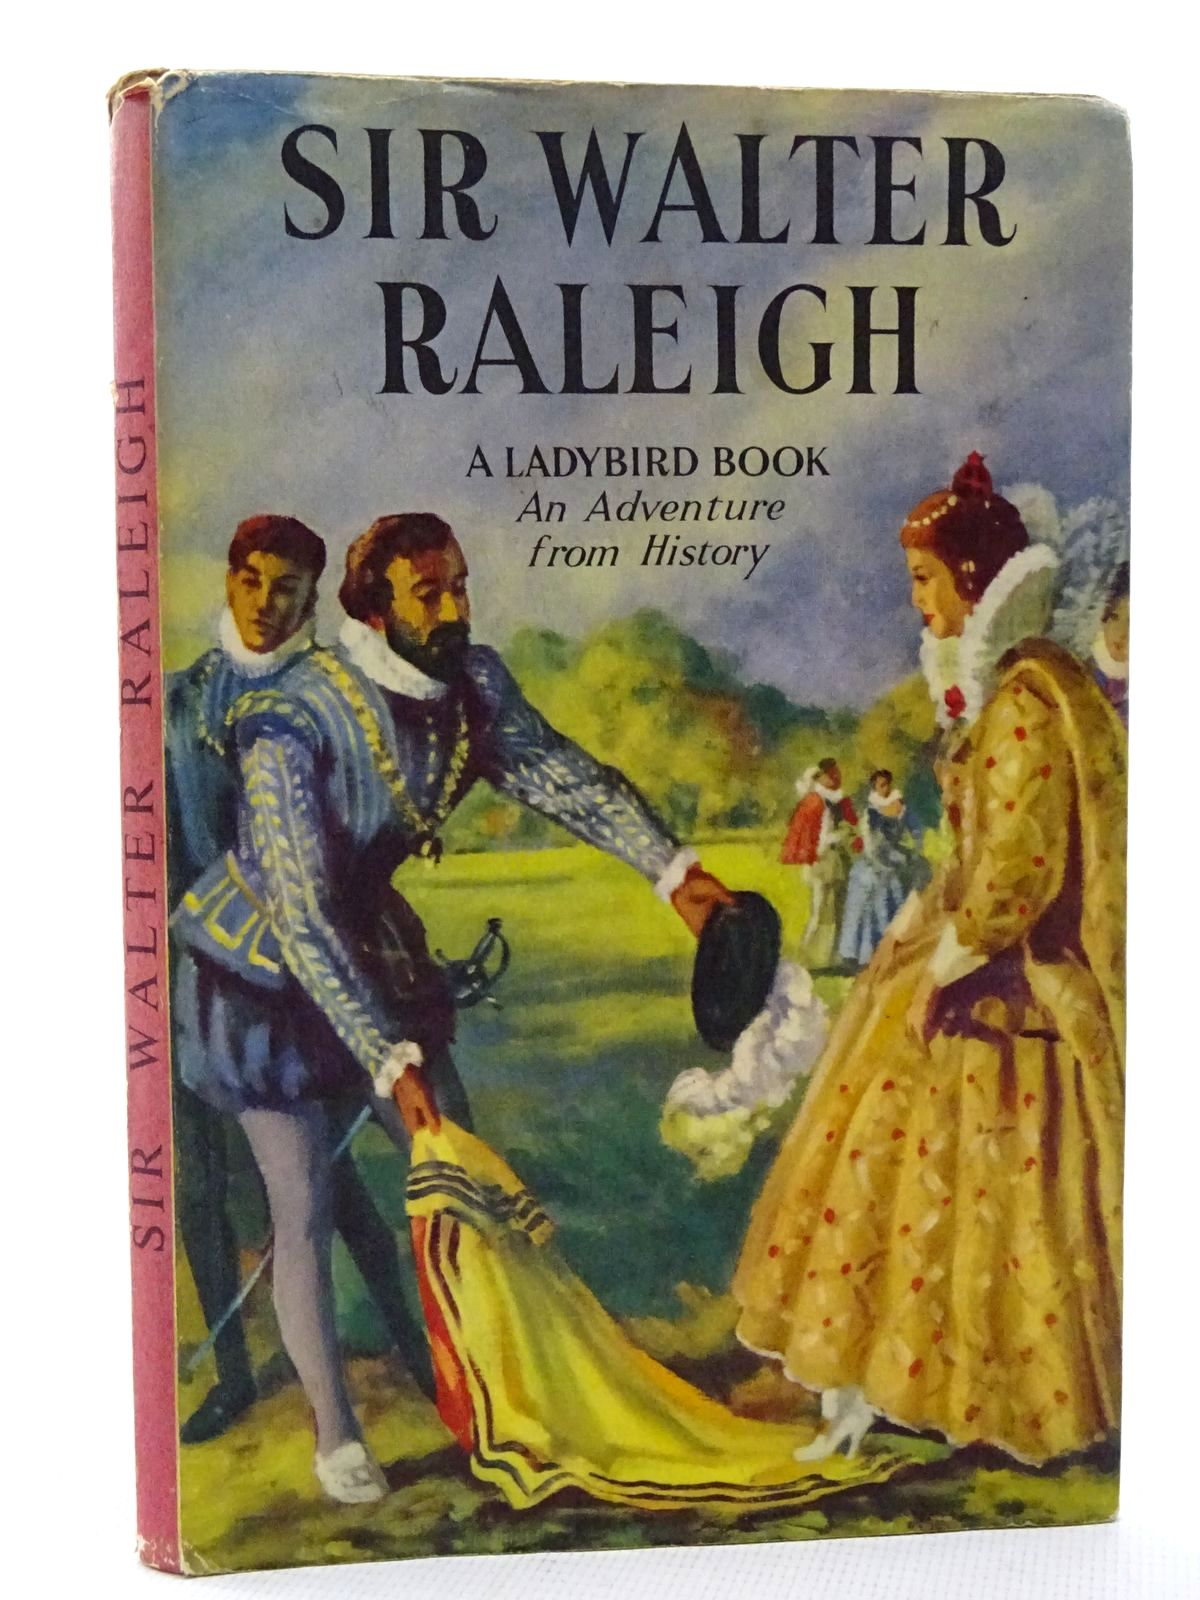 Photo of SIR WALTER RALEIGH written by Peach, L. Du Garde illustrated by Kenney, John published by Wills & Hepworth Ltd. (STOCK CODE: 2124649)  for sale by Stella & Rose's Books